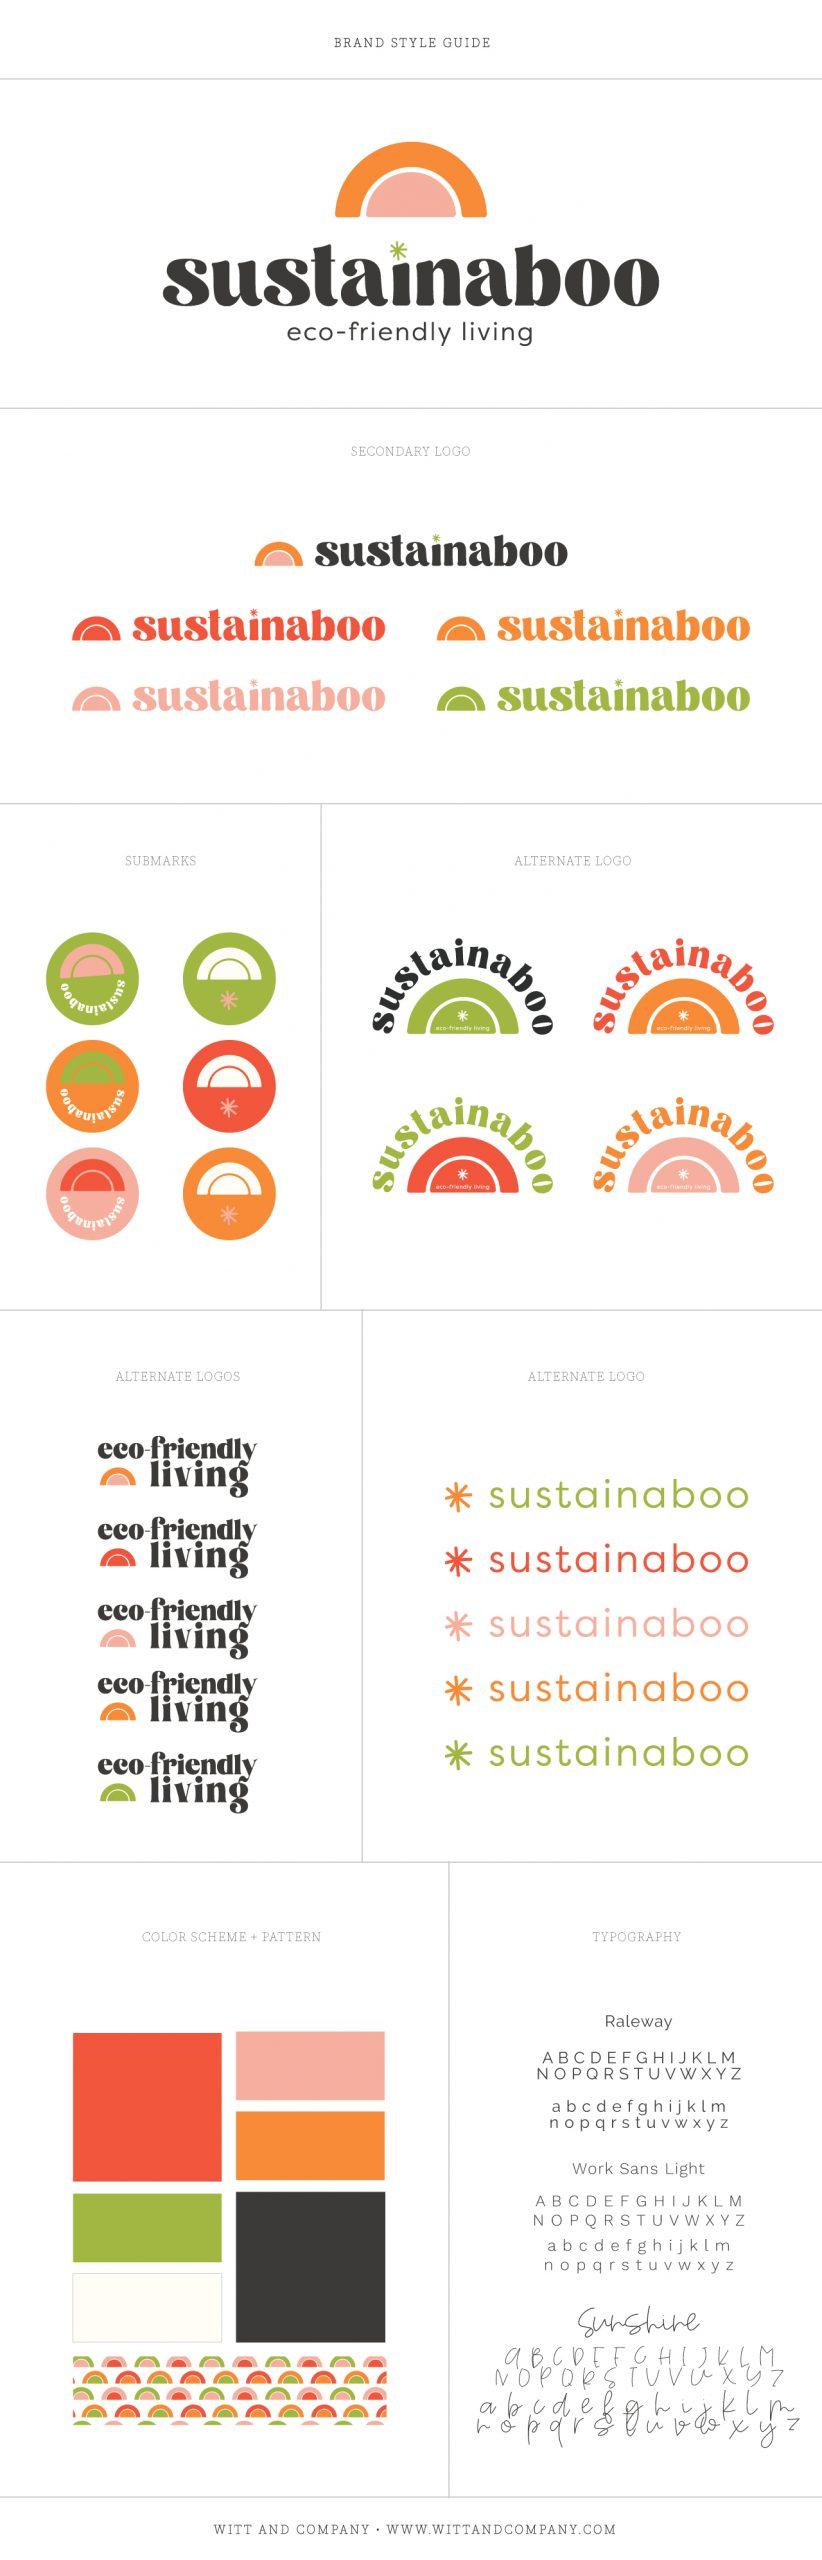 Sustainaboo Logo and Brand Design | Witt and Company